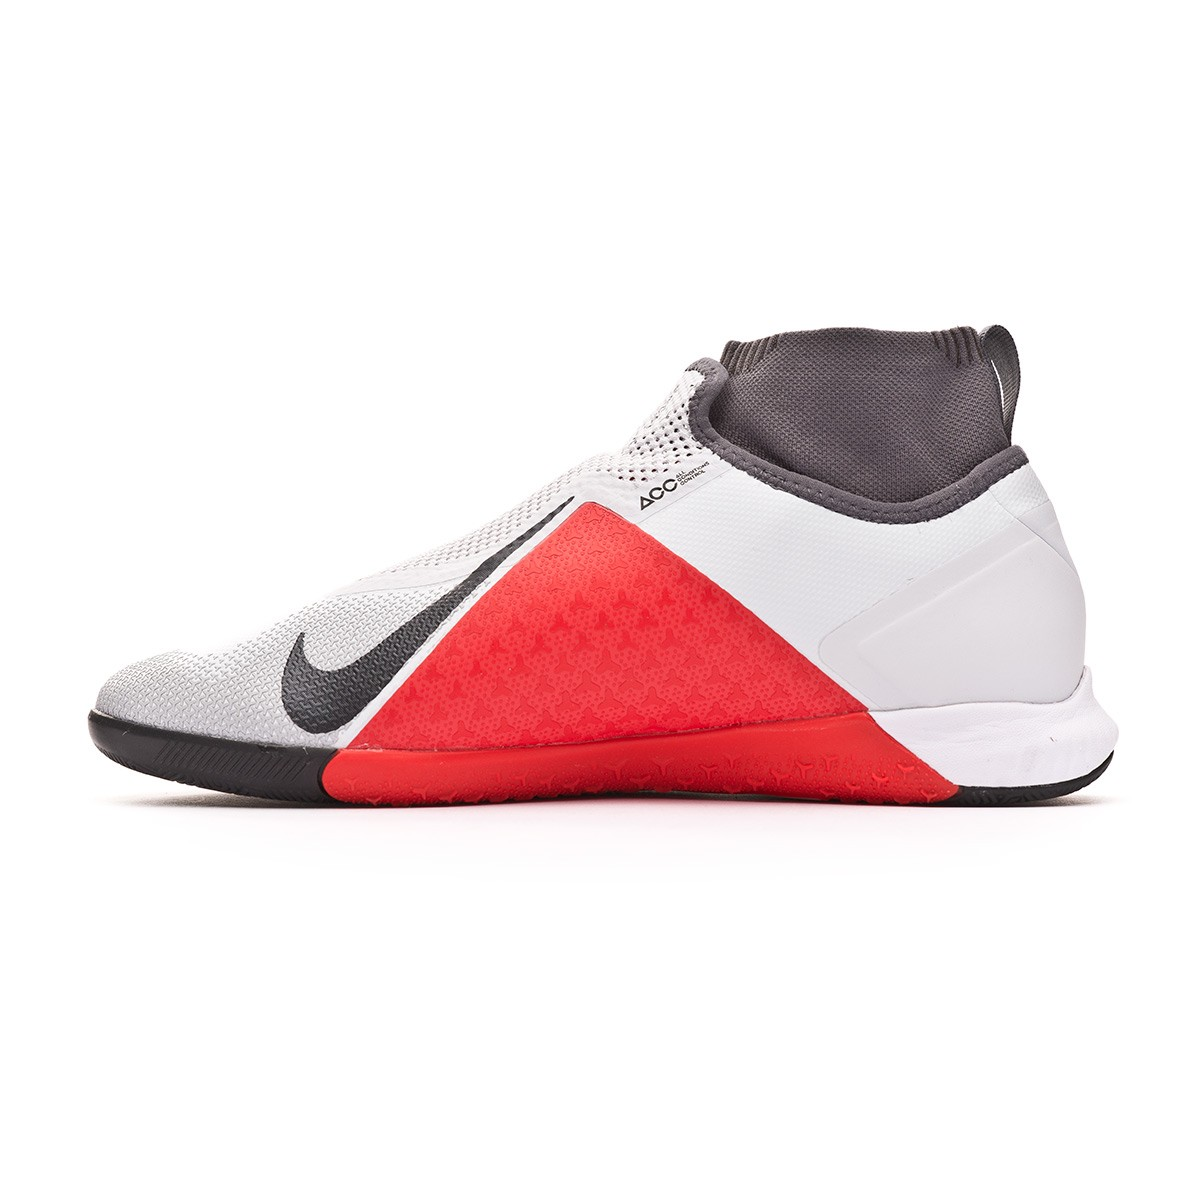 bb158e95d Futsal Boot Nike React Phantom Vision Pro DF IC Pure platinum-Light  crimson-Wolf grey - Football store Fútbol Emotion